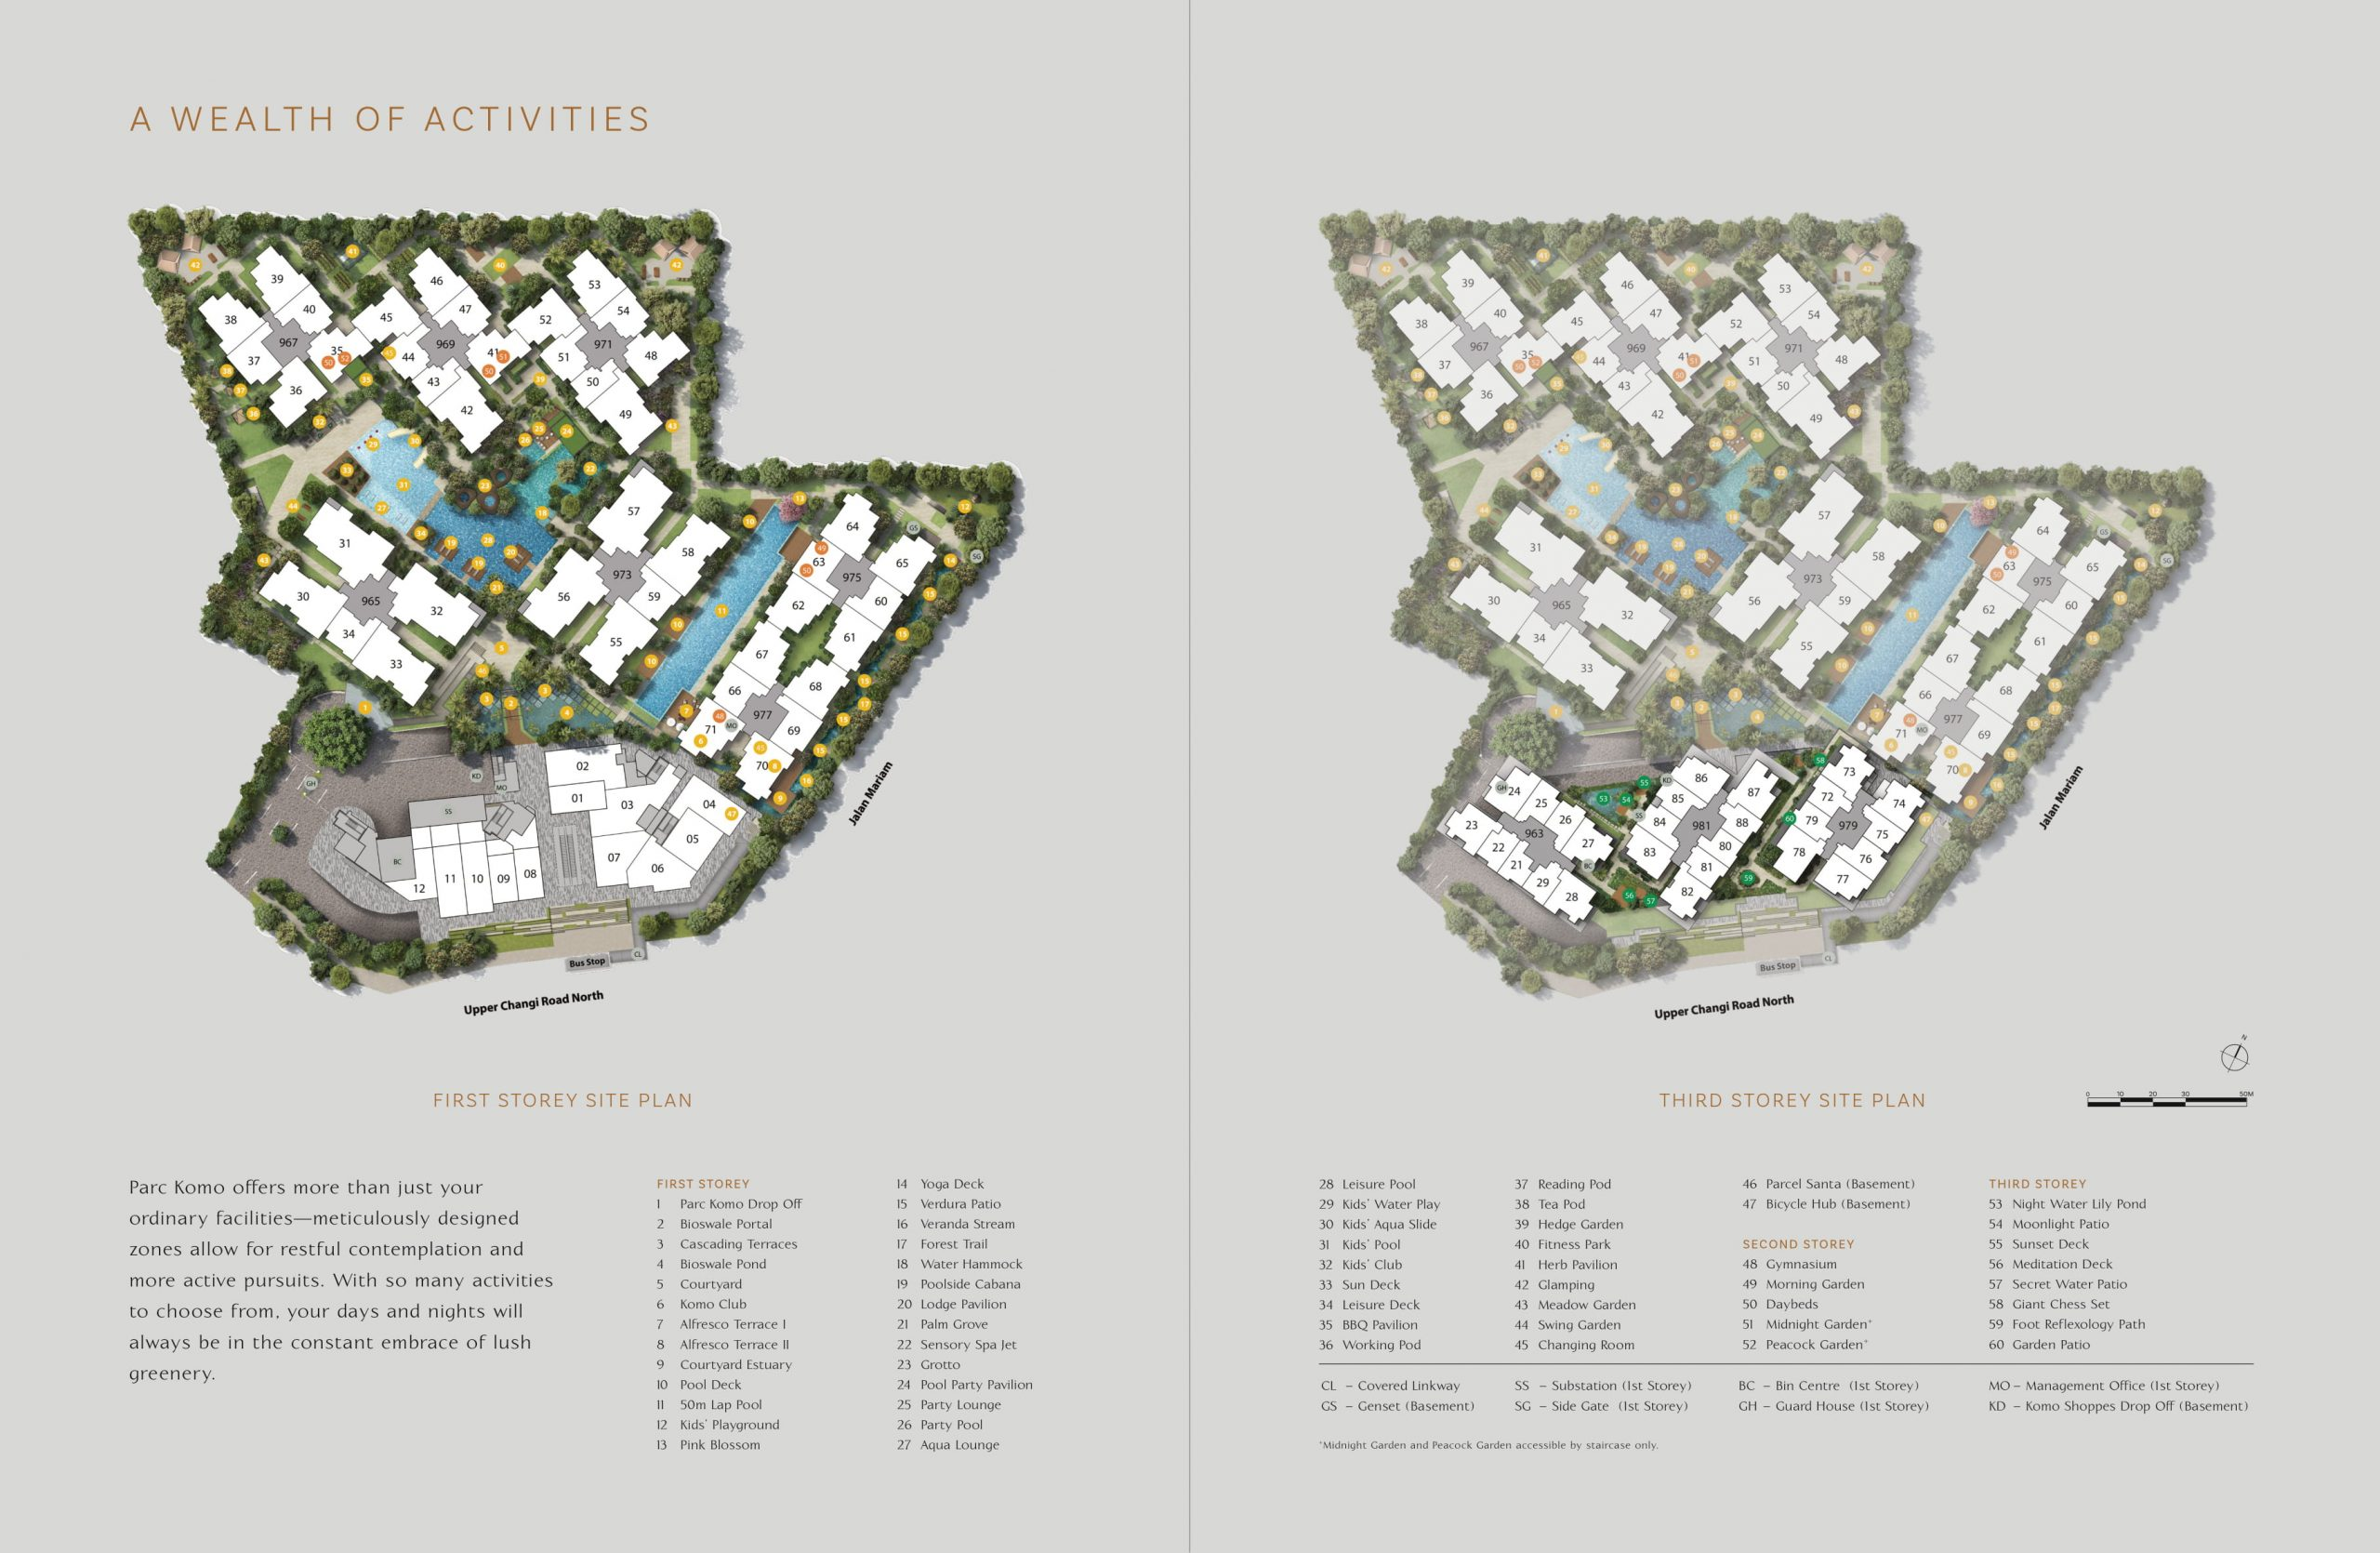 Parc Komo's site plan and facilities